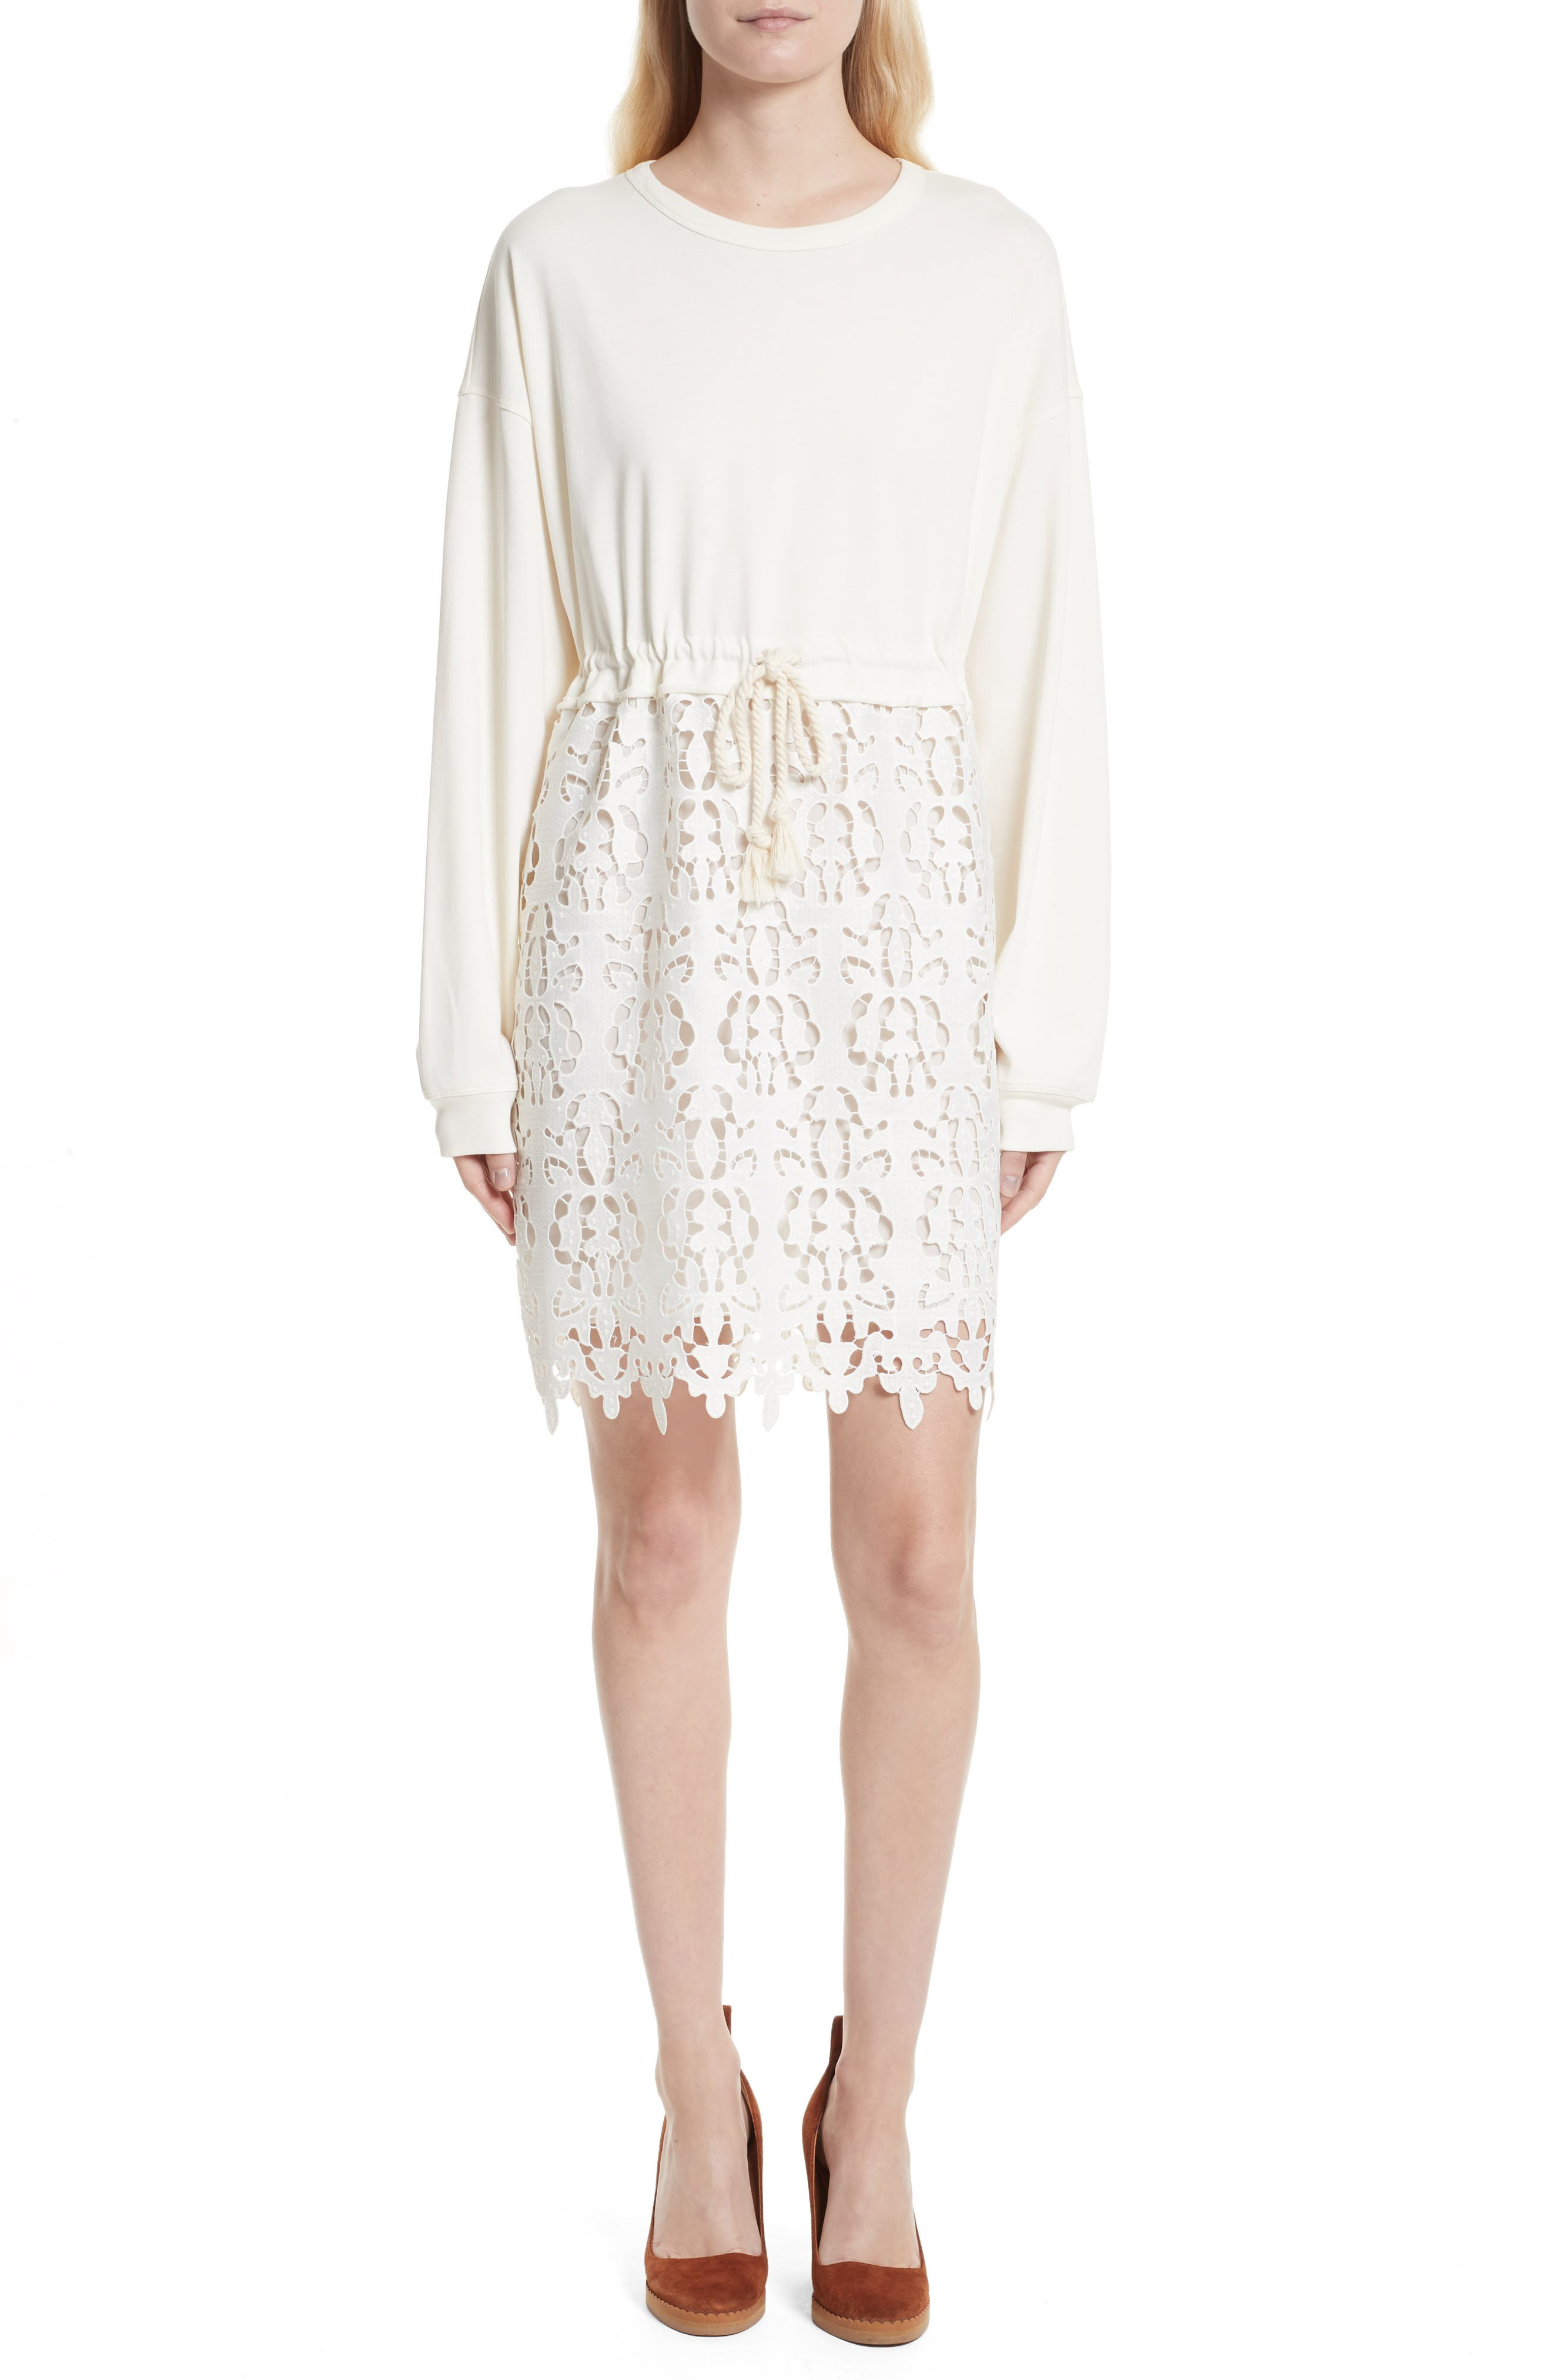 Alternate Image 1 Selected - See by Chloé Lace Skirt Sweatshirt Dress